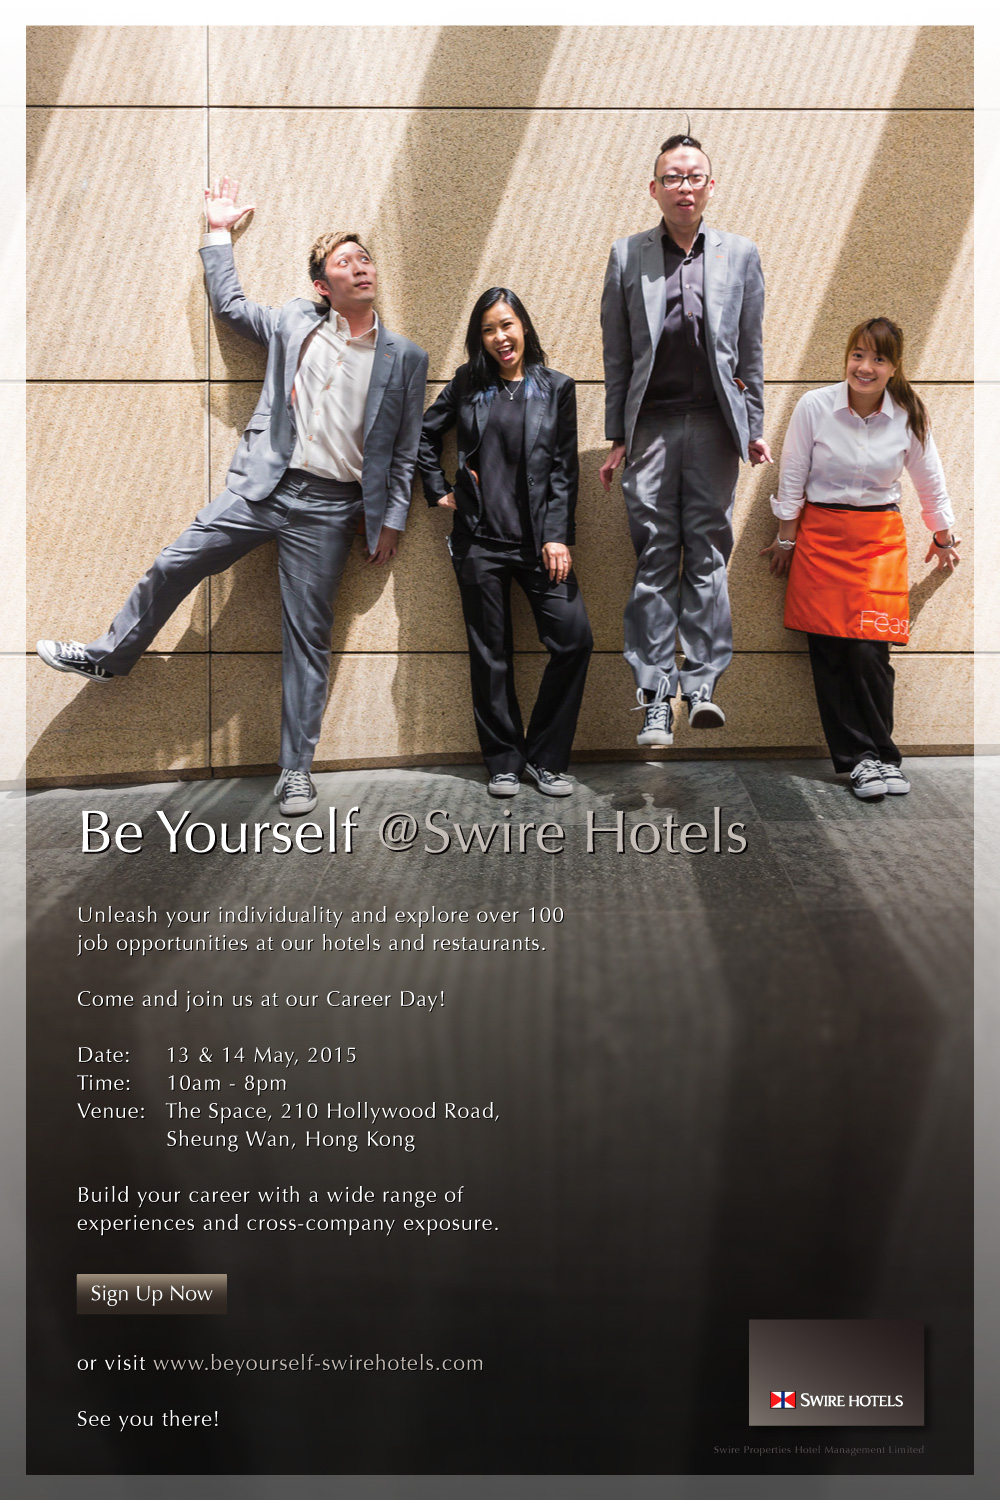 13-14 May, 2015 Career Day organized from Swire Hotels